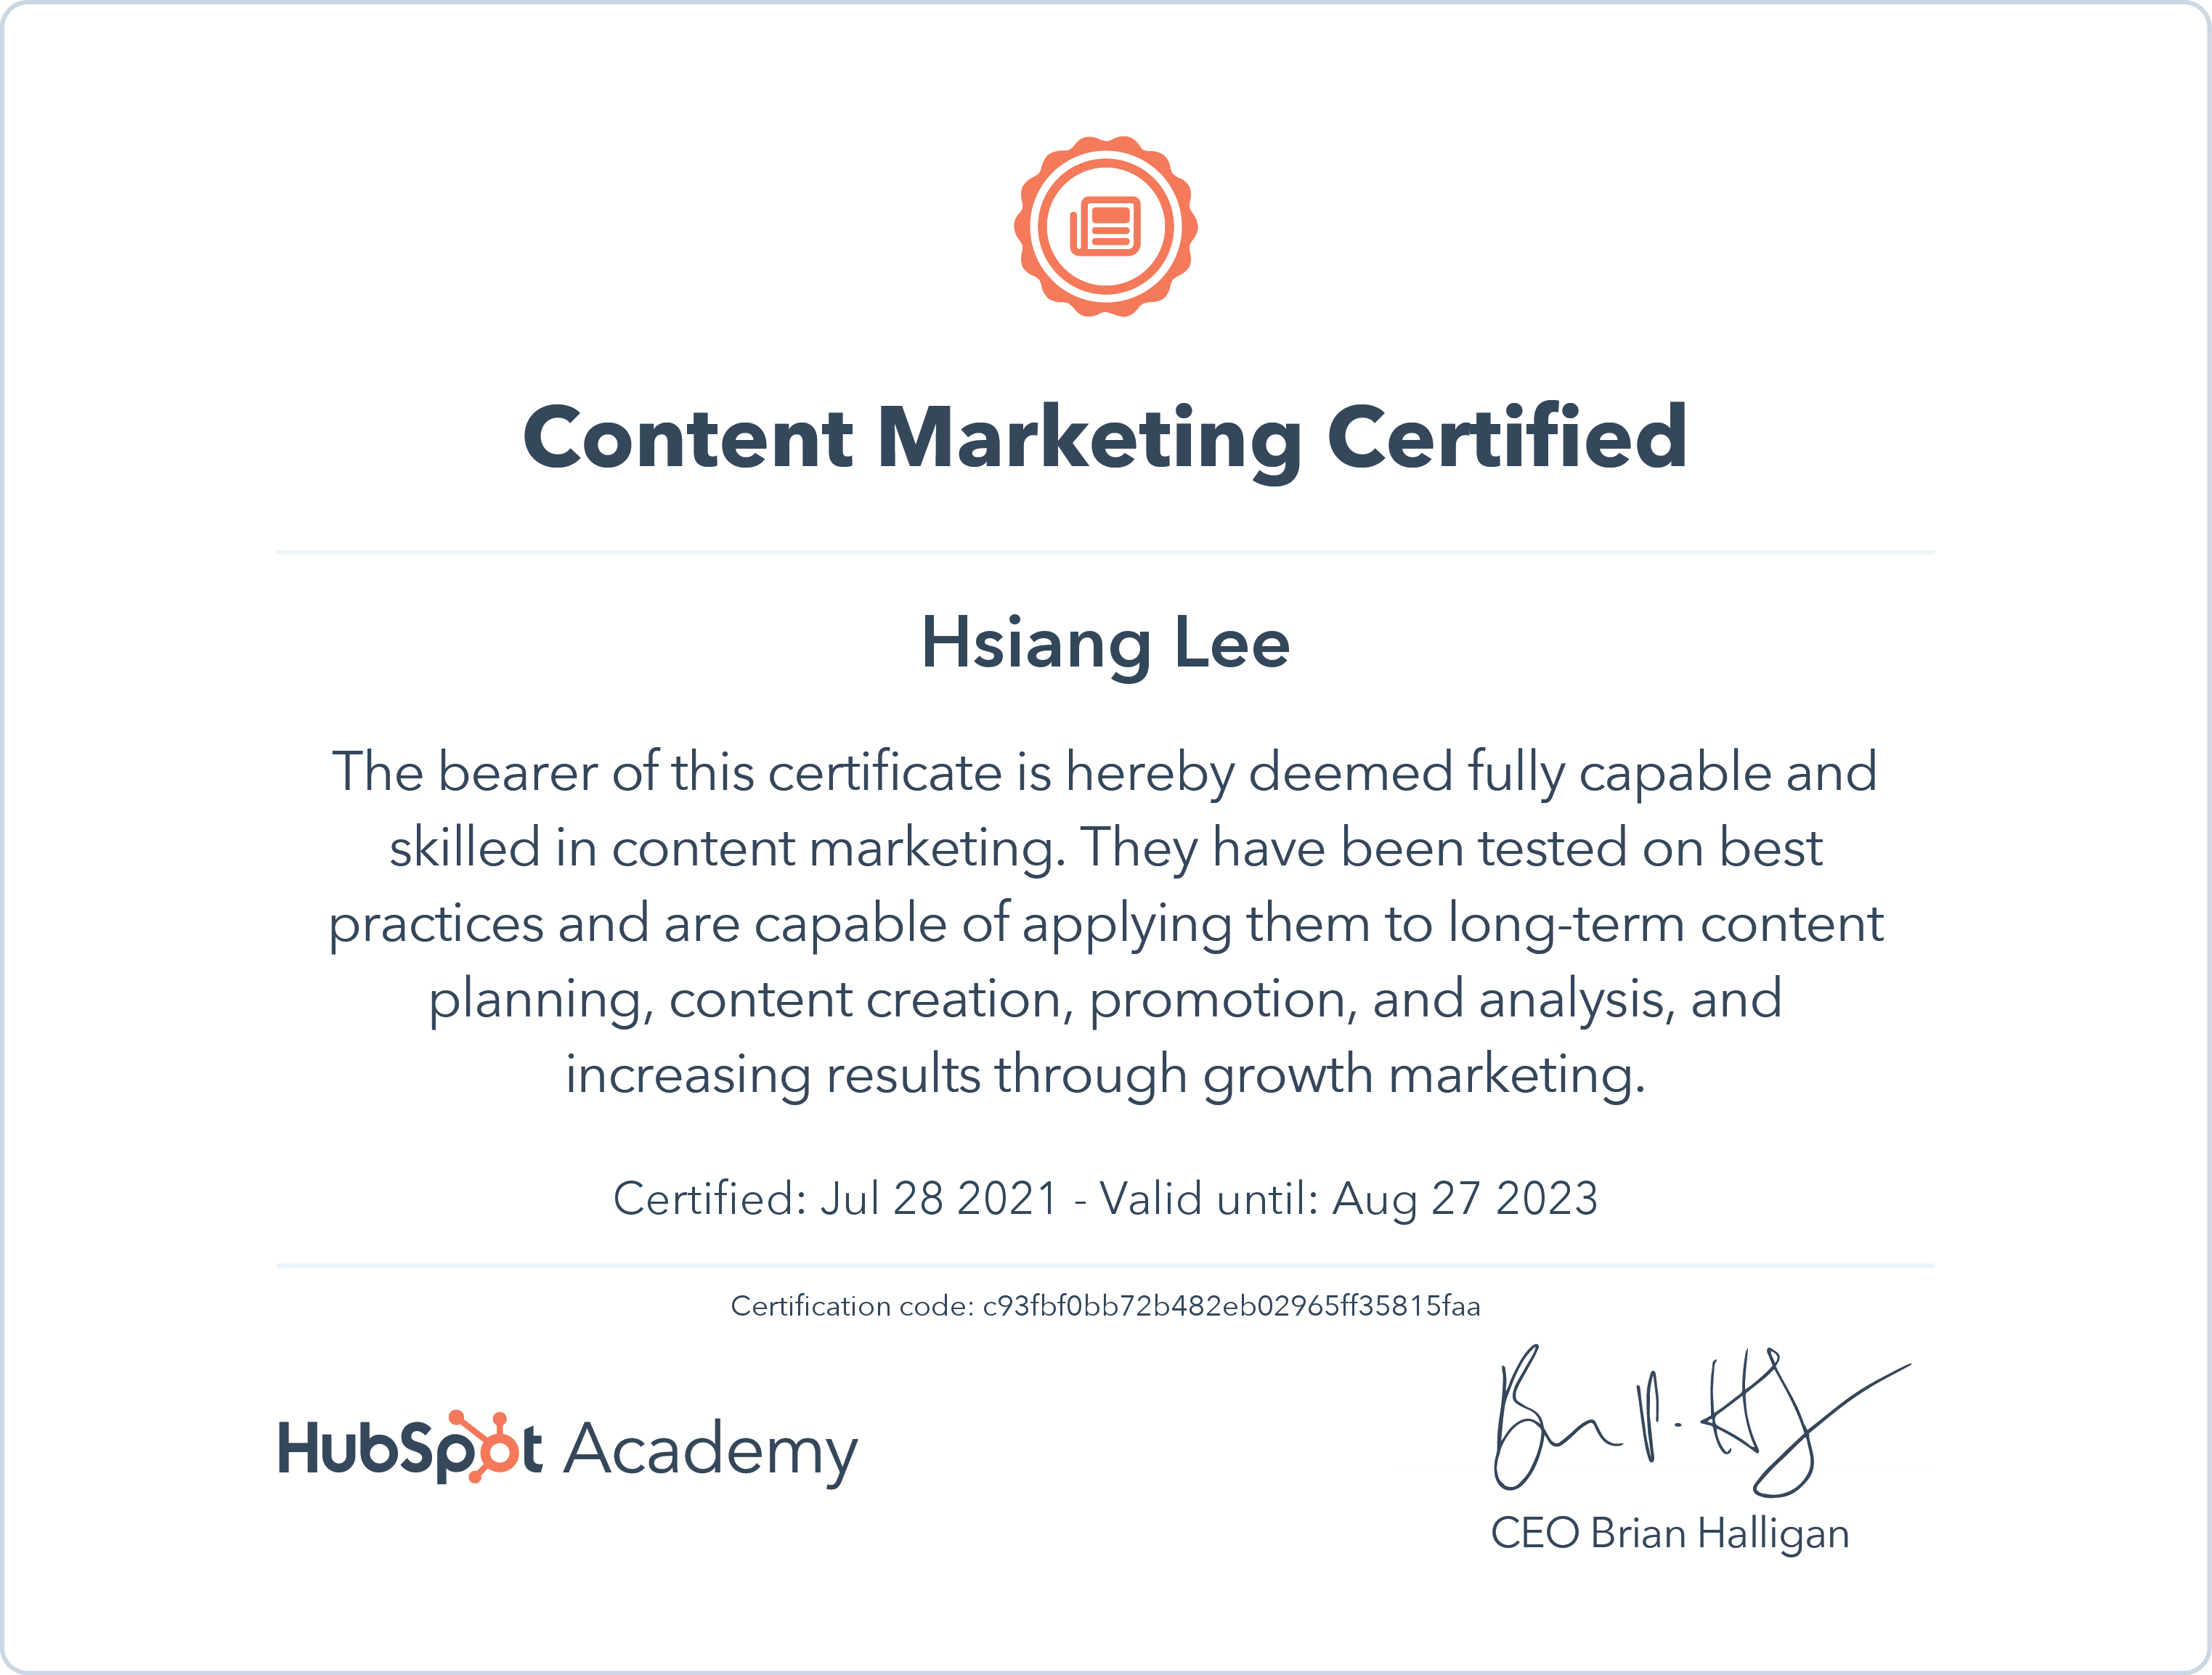 content-marketing-certified_hsiang